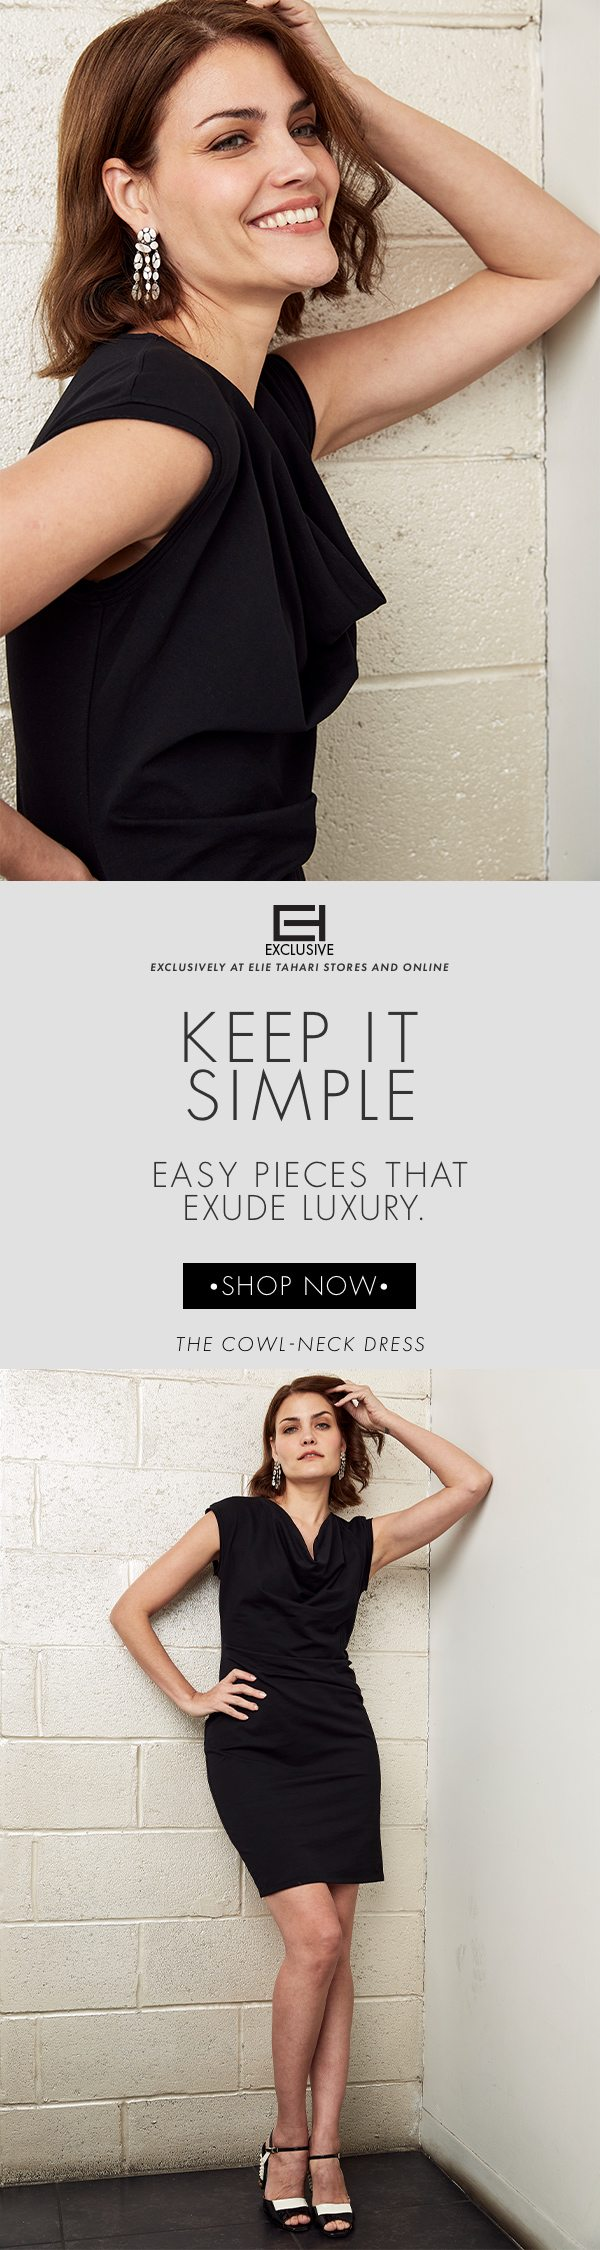 Mordern Minilalism - Easy Pieces that exude luxury